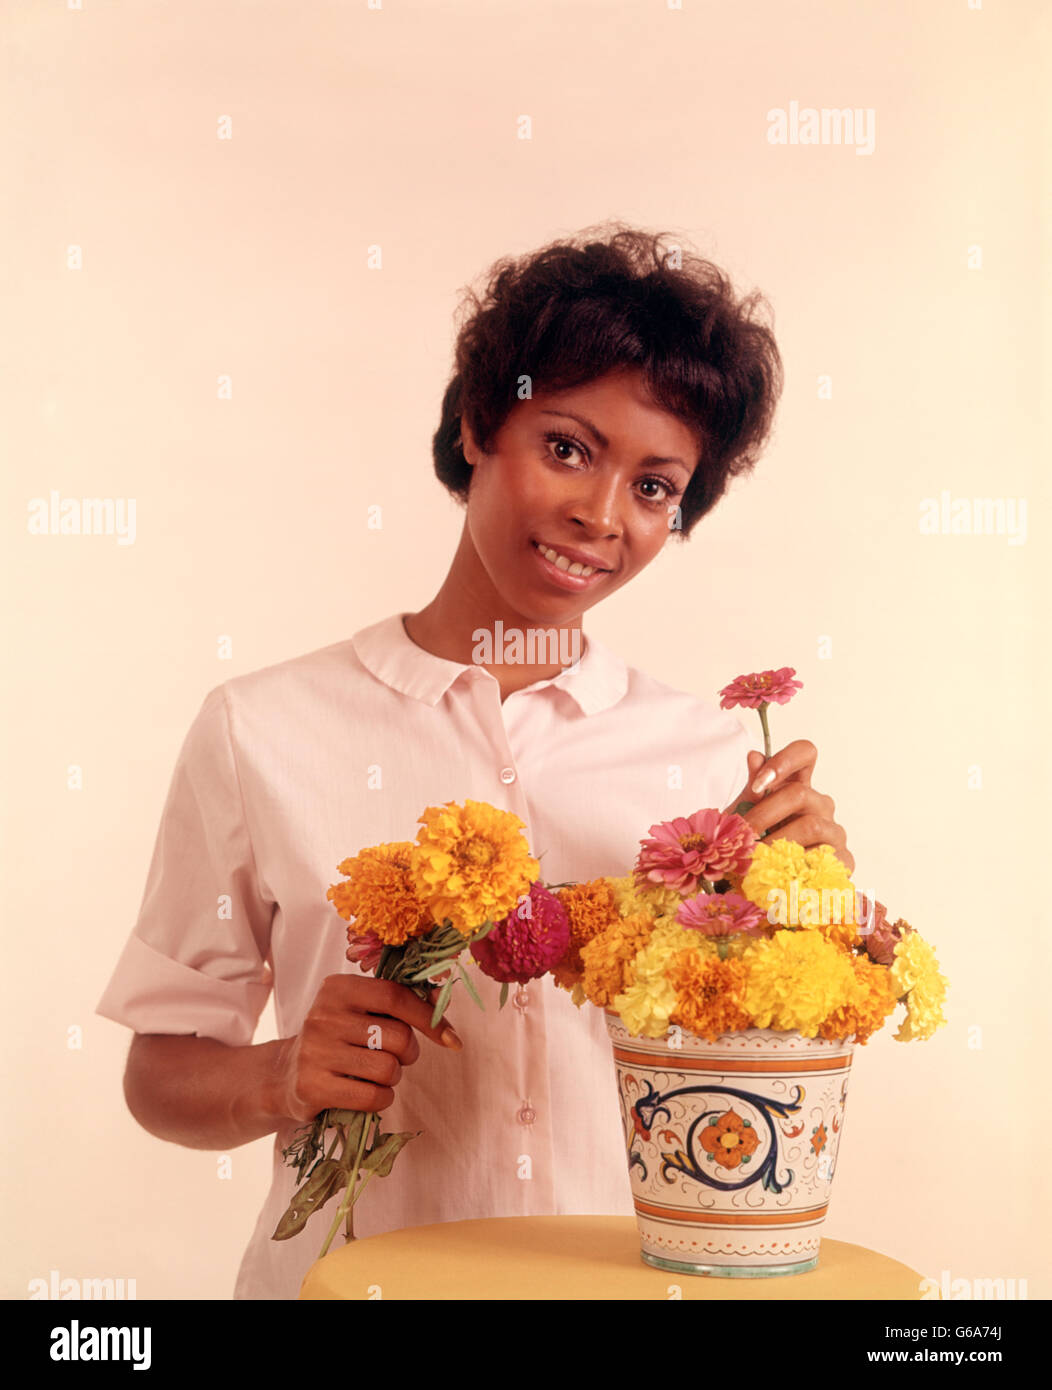 1970s PORTRAIT SMILING AFRICAN AMERICAN WOMAN ARRANGING FLOWERS - Stock Image